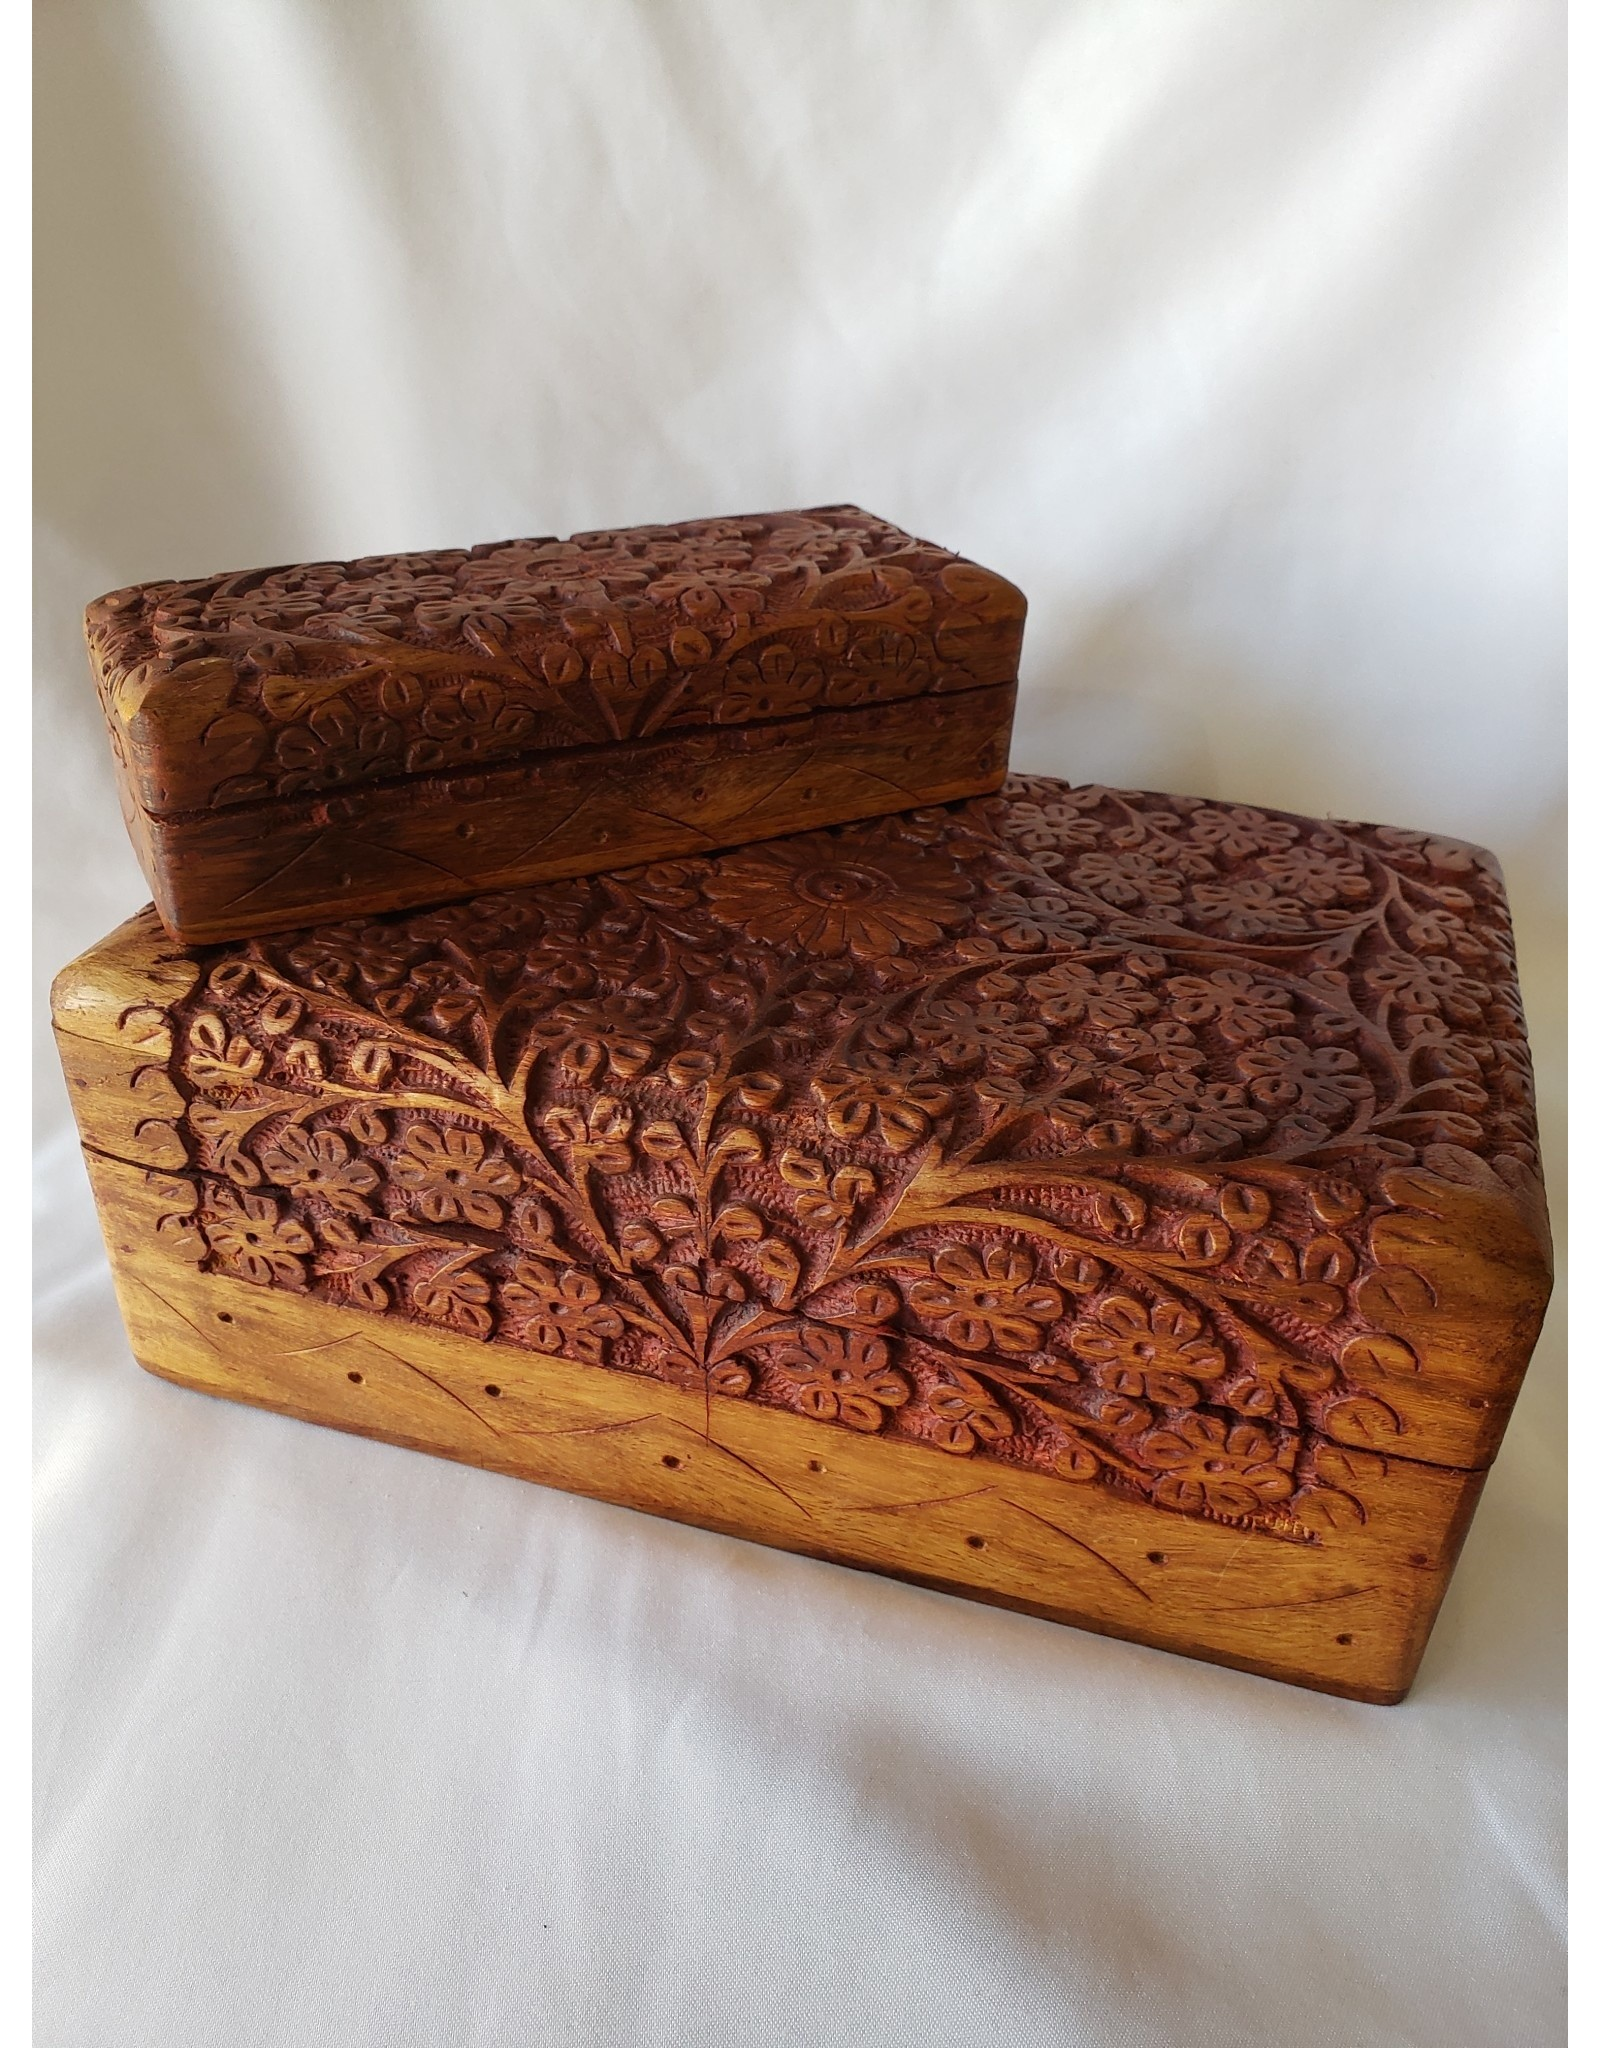 Wooden Jewelry Boxes - Set of 2